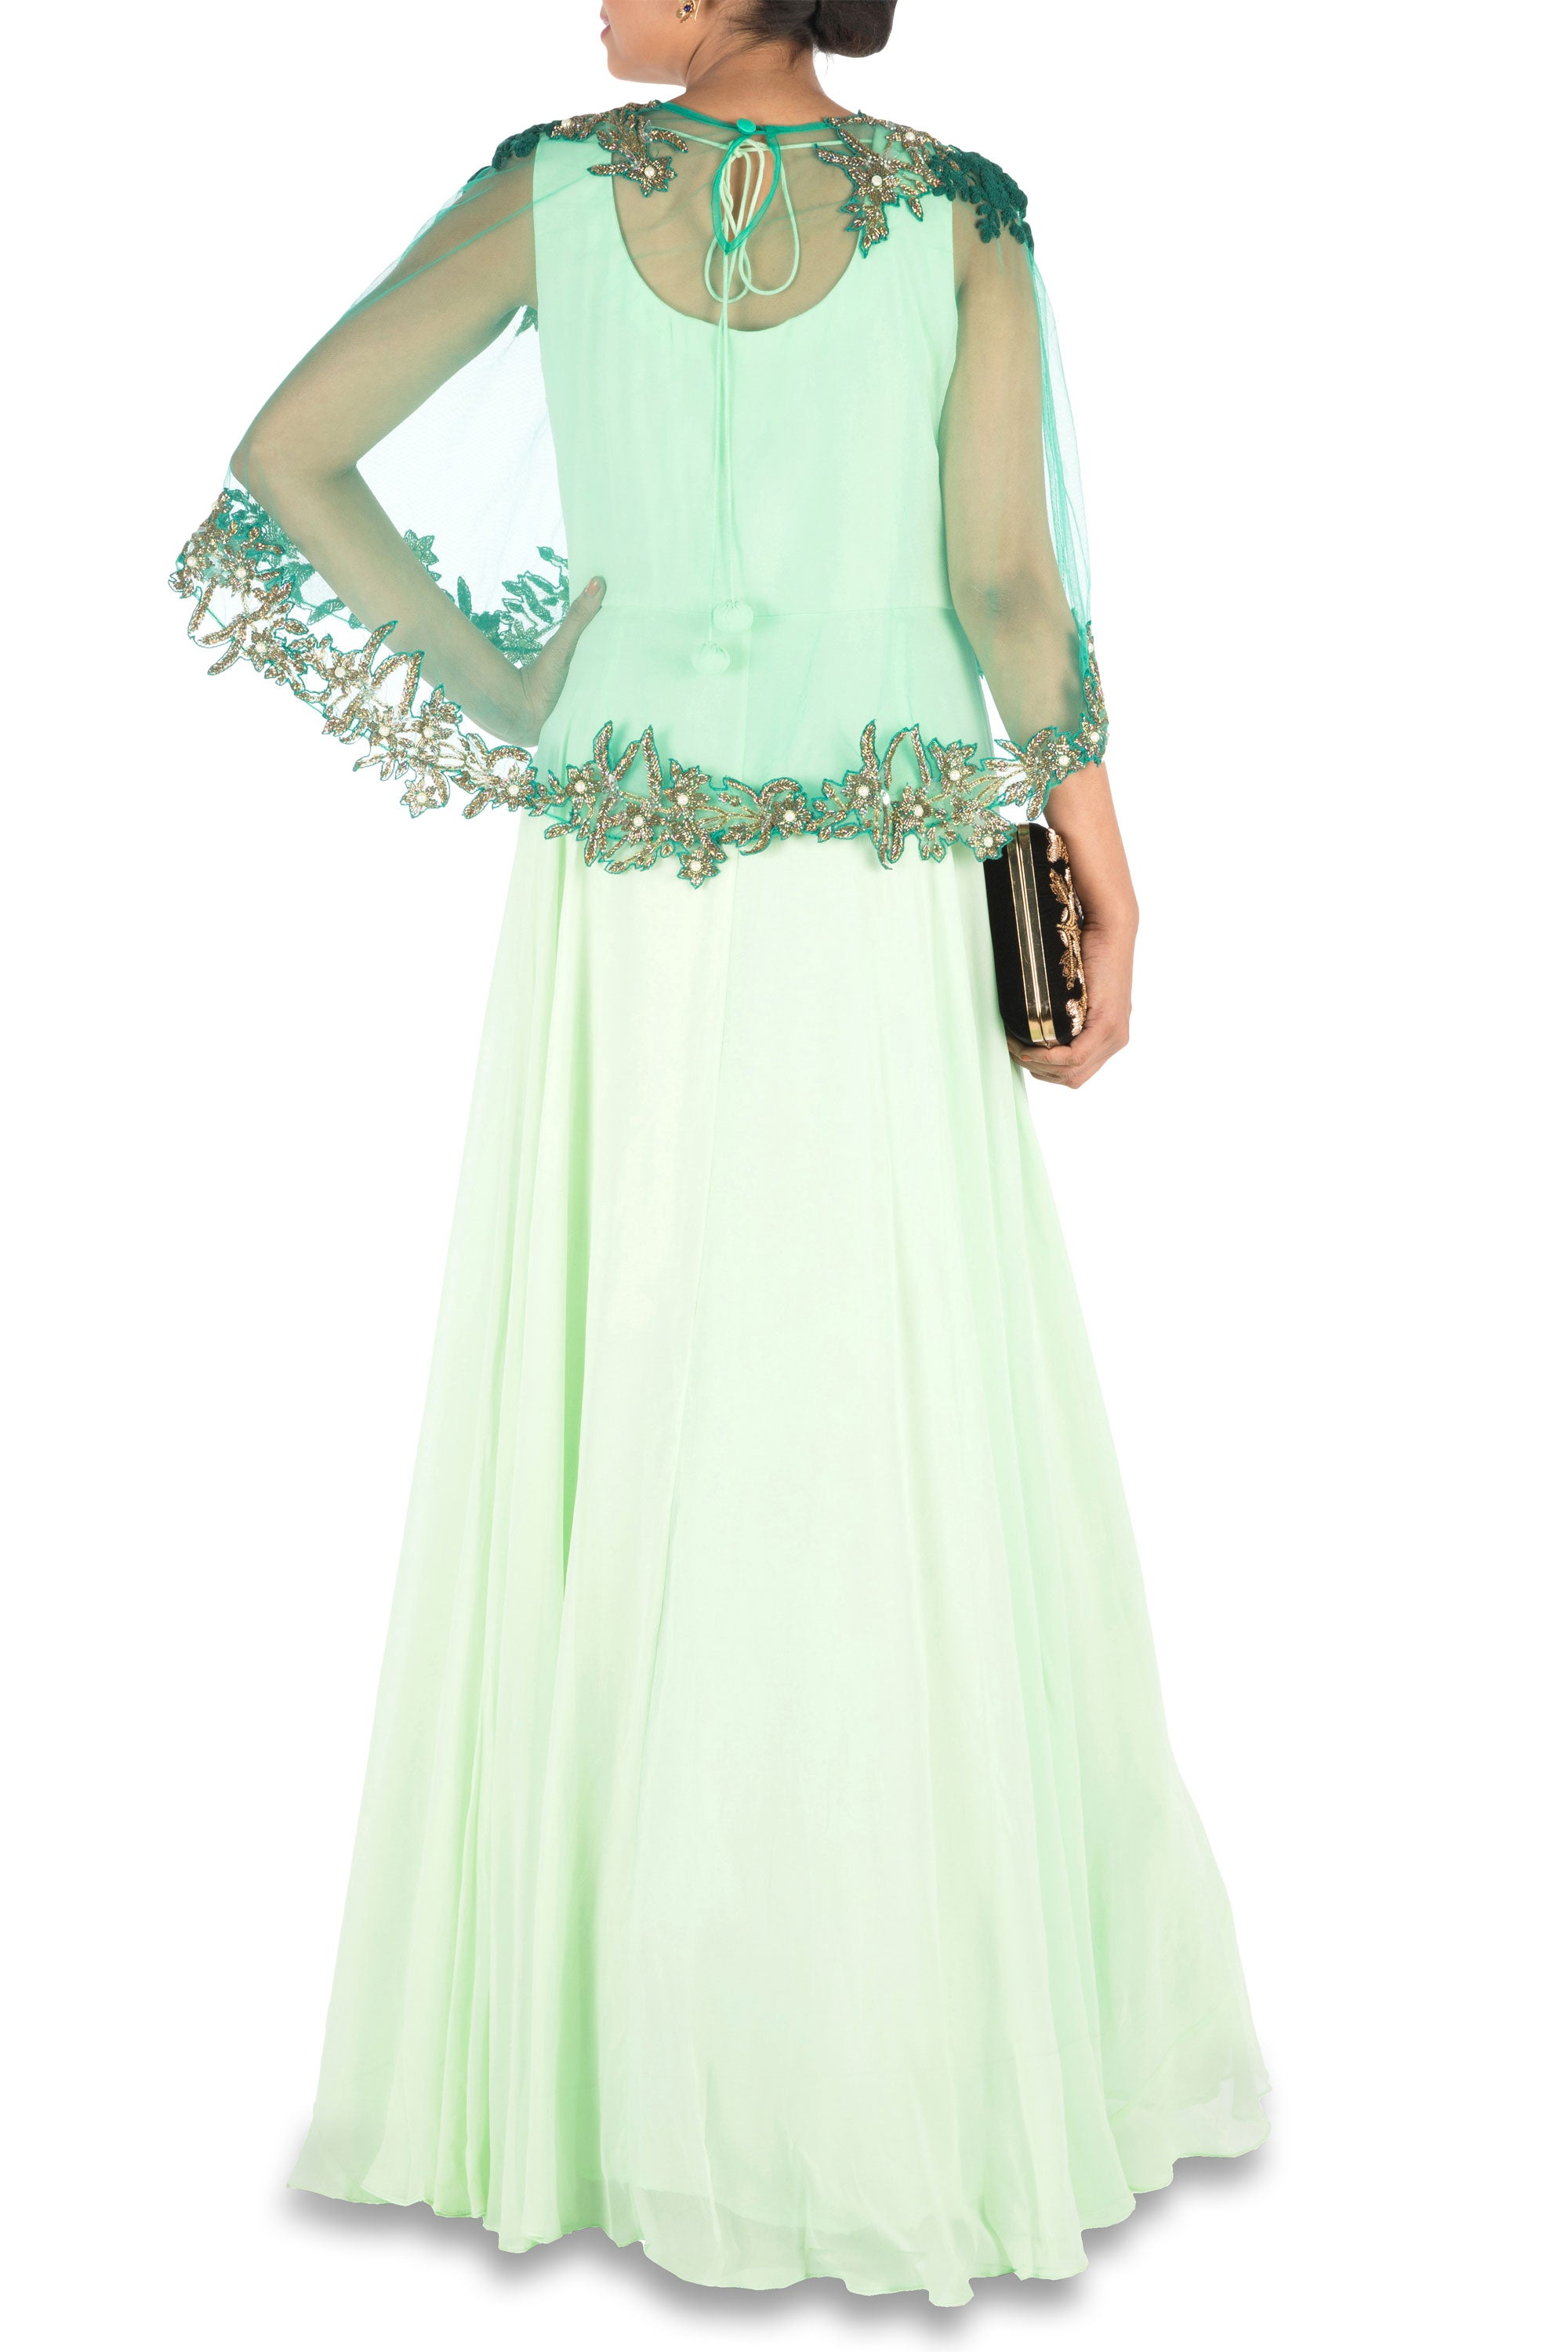 Hand Embroidered Sea Green Flare Gown With Dark Green Cape Back